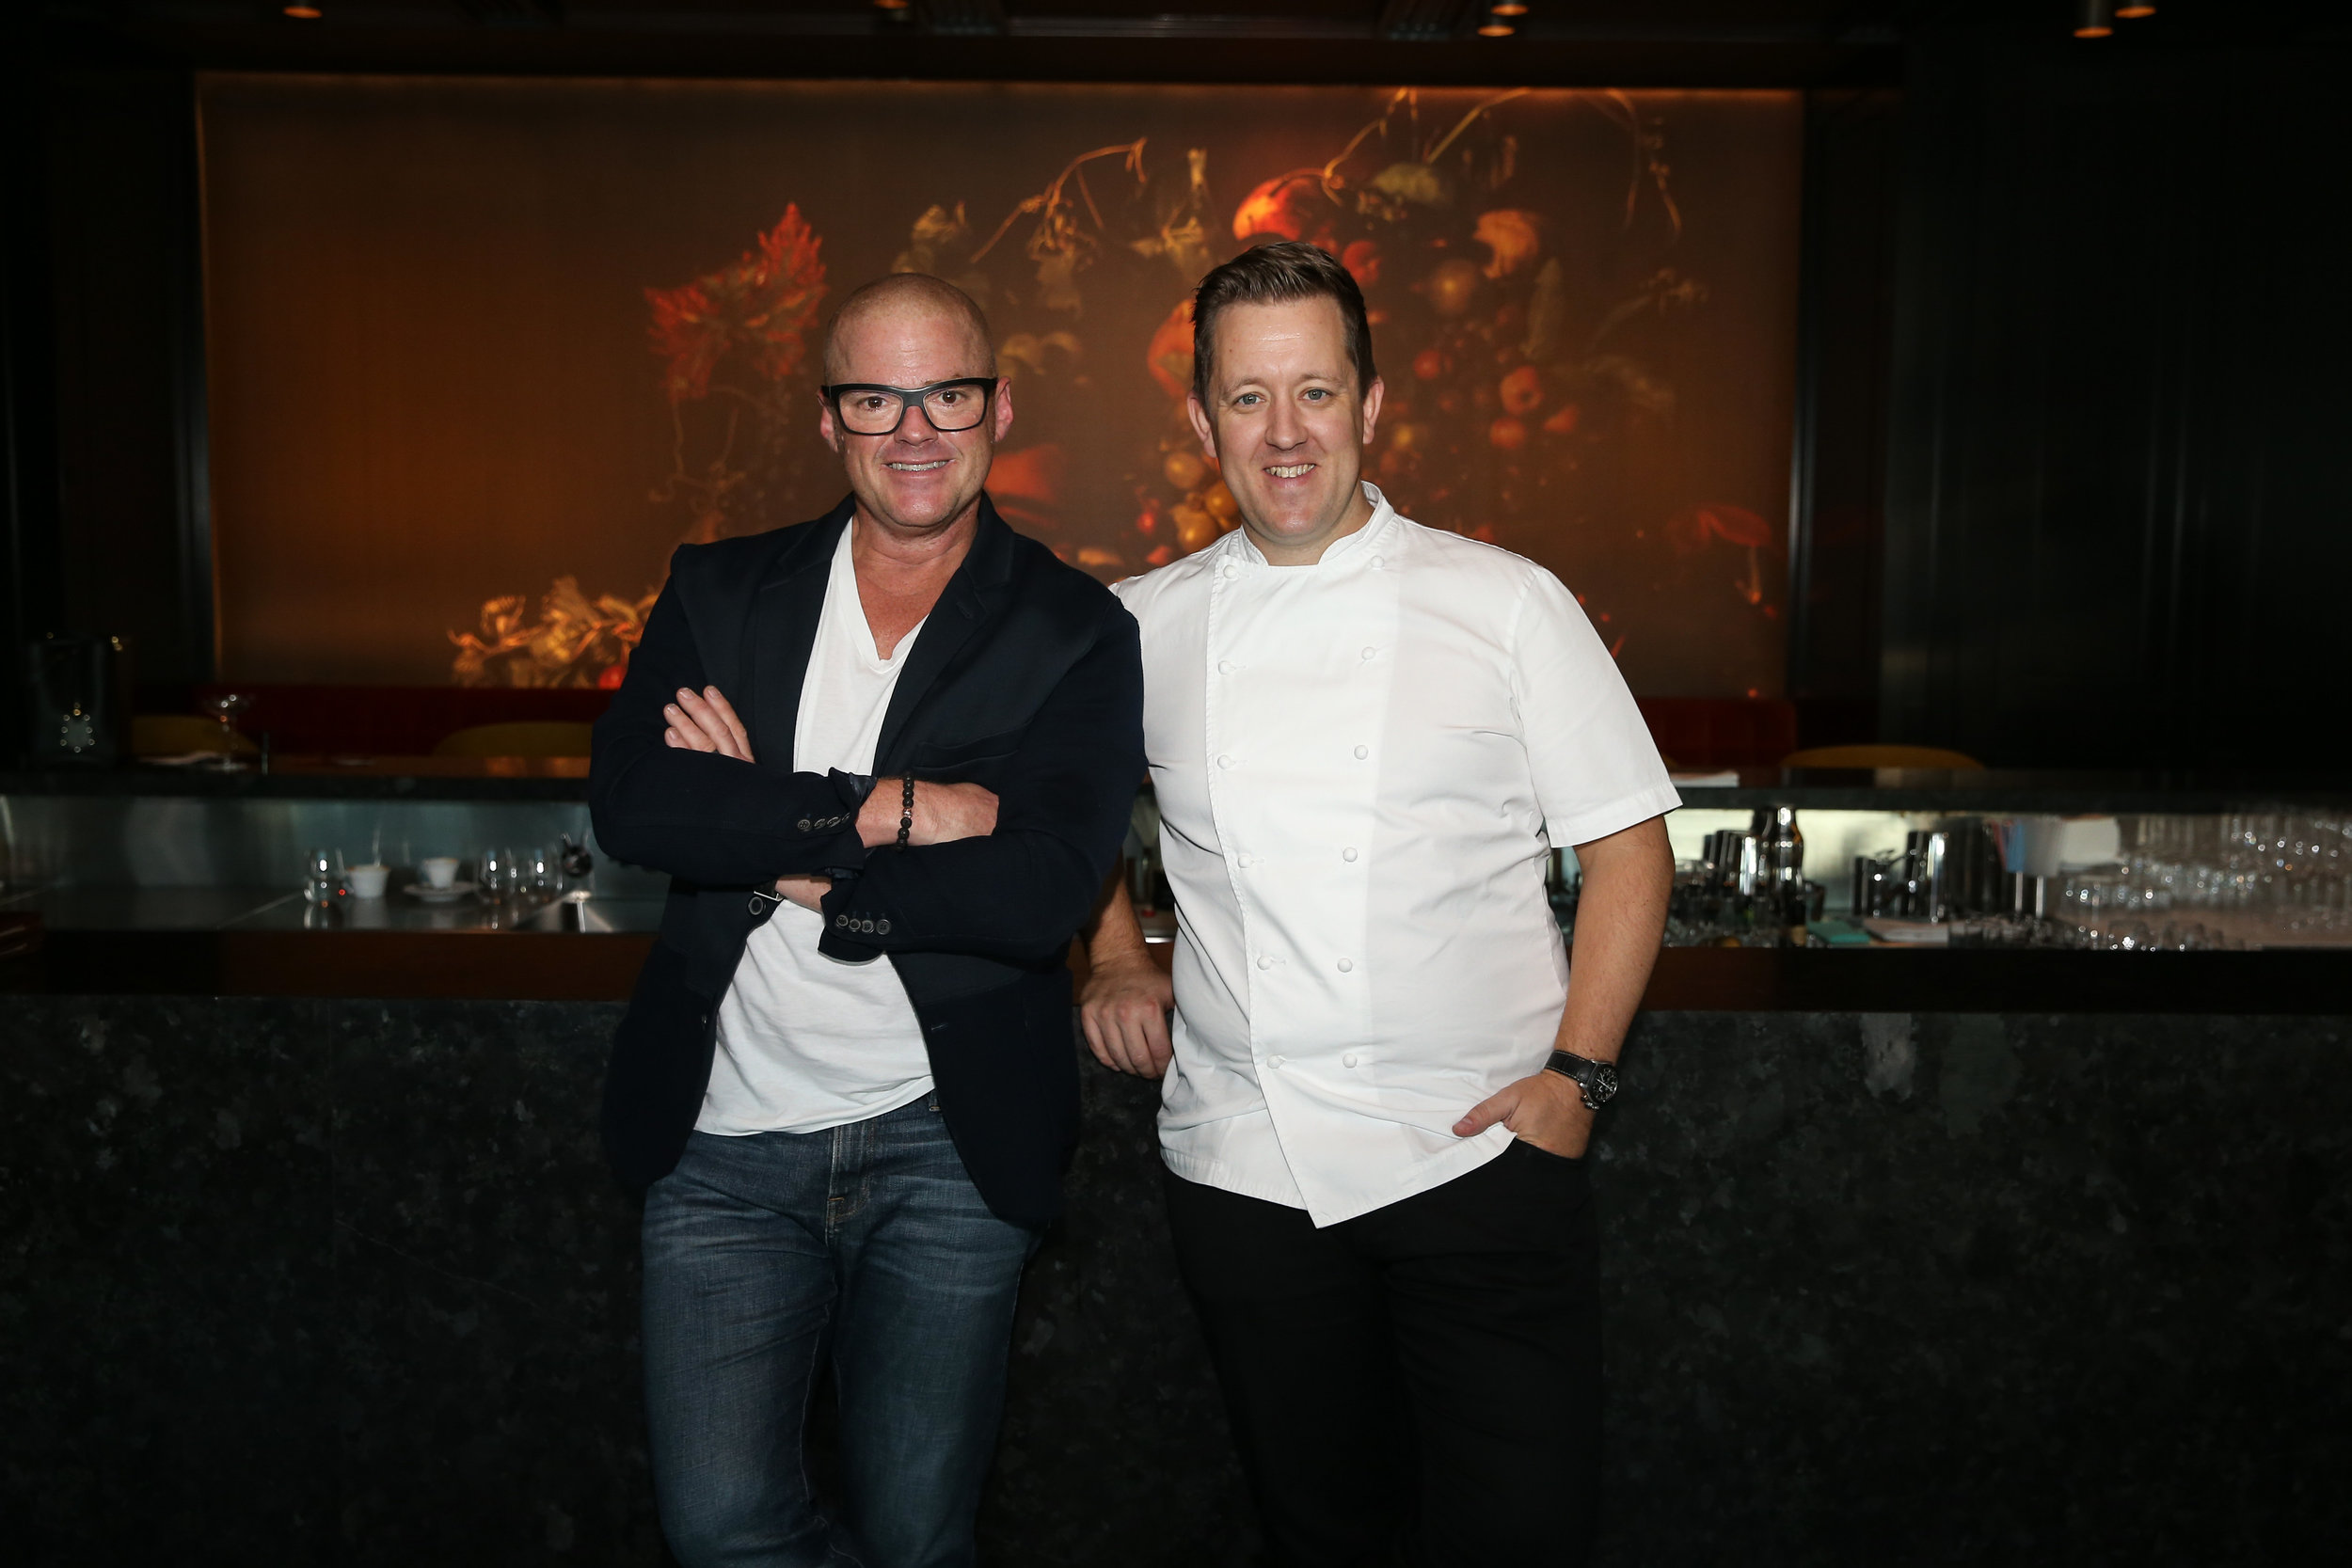 Heston Blumenthal and Ashley Palmer-Watts at Dinner by Heston Blumenthal Melbourne